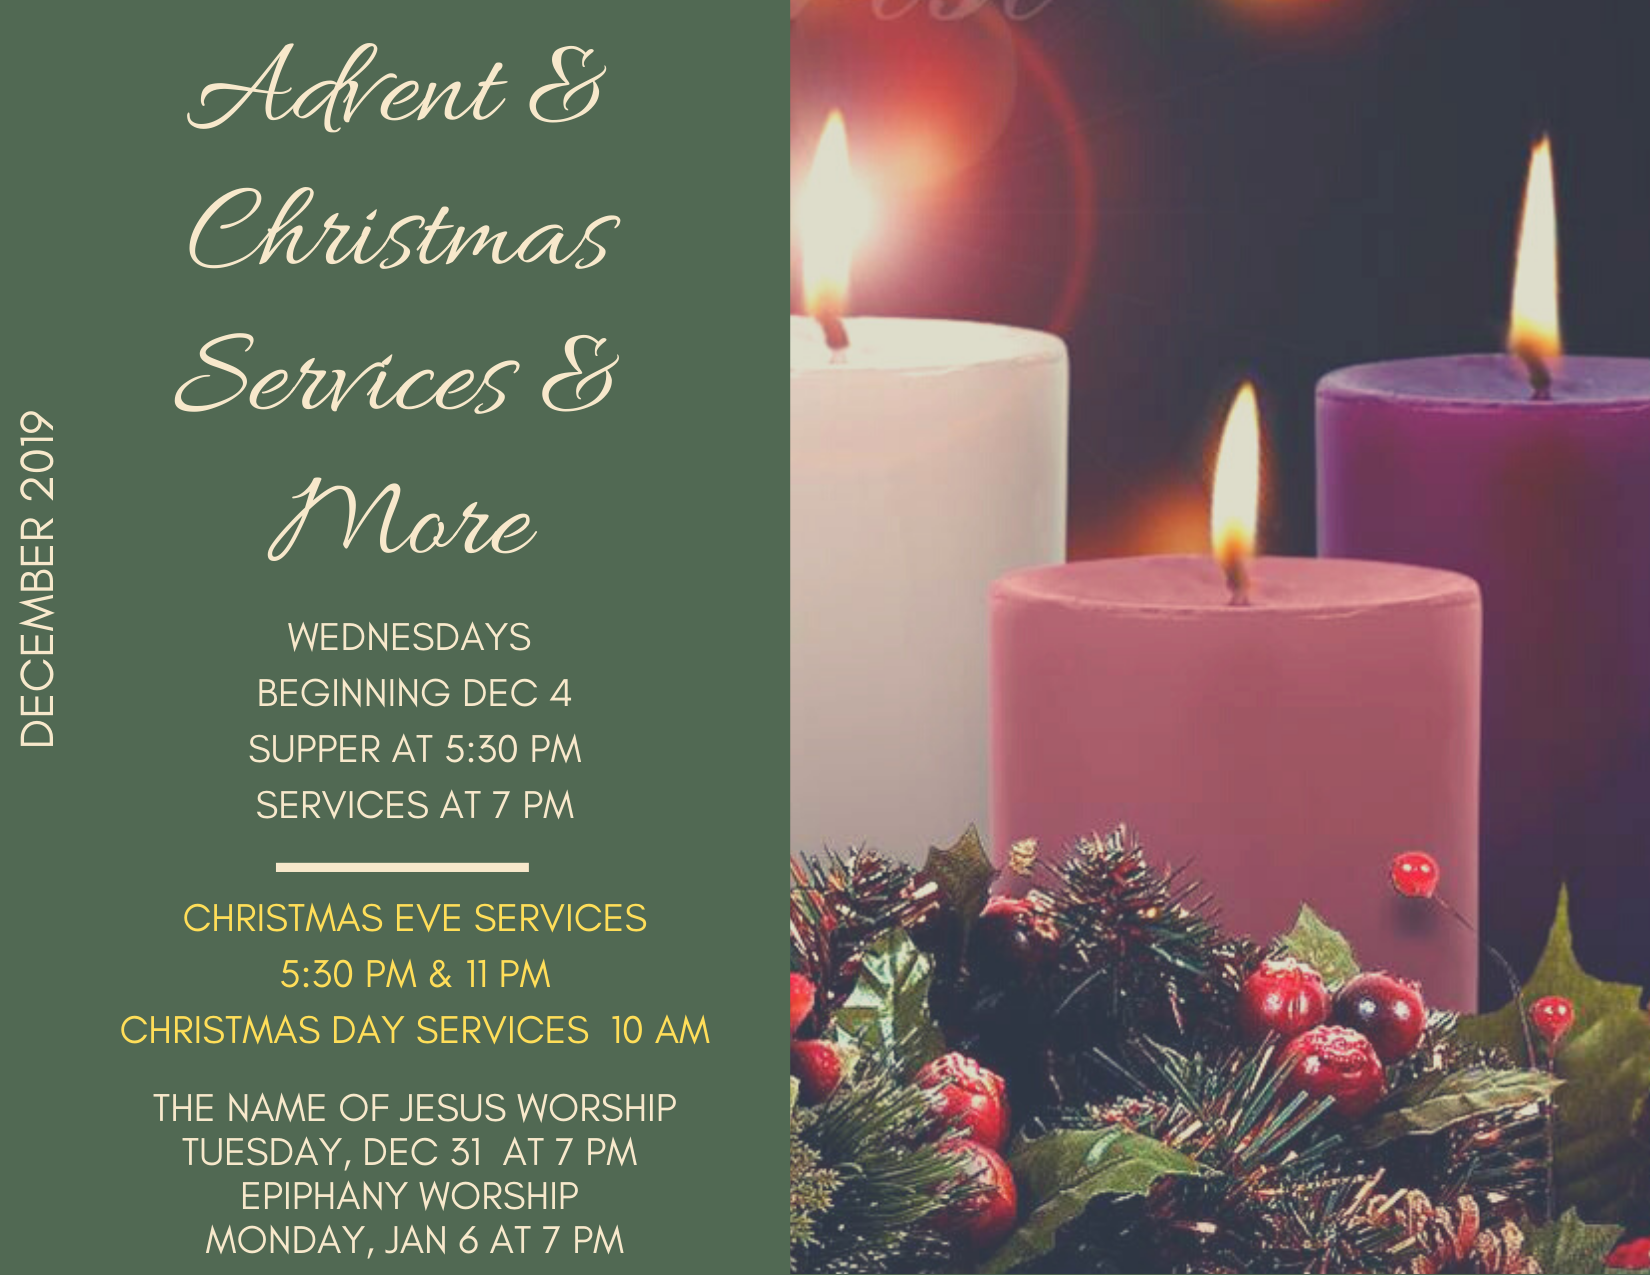 Advent_Christmas_Services_More_1